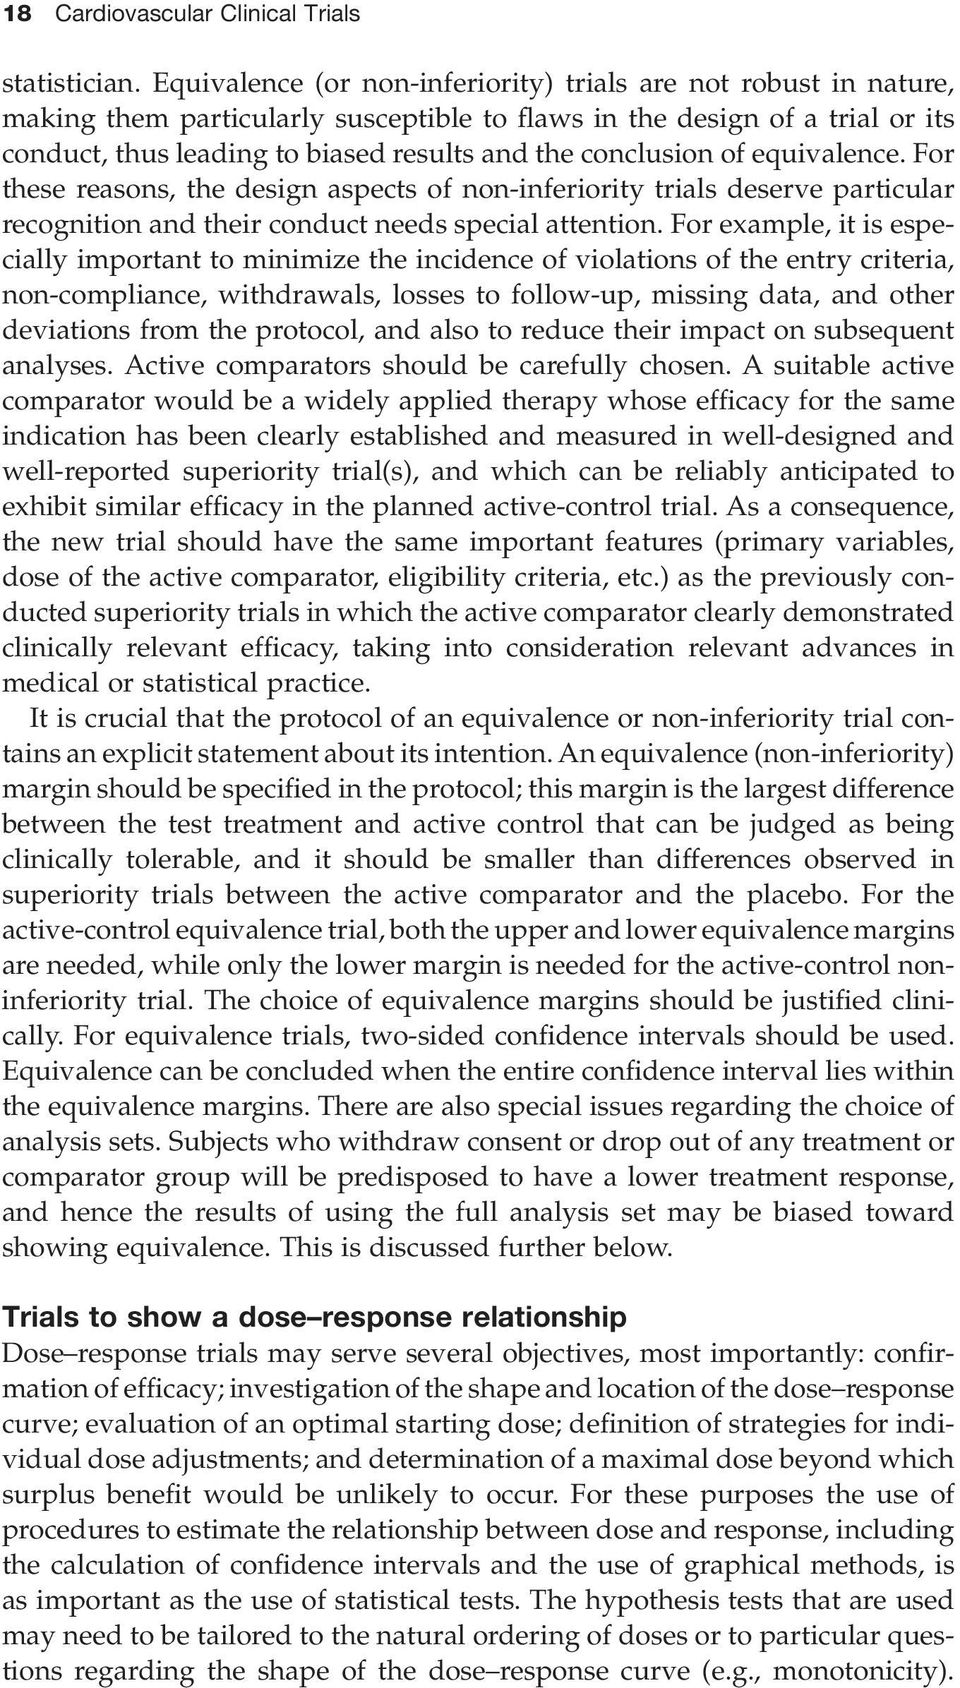 conclusion of equivalence. For these reasons, the design aspects of non - inferiority trials deserve particular recognition and their conduct needs special attention.